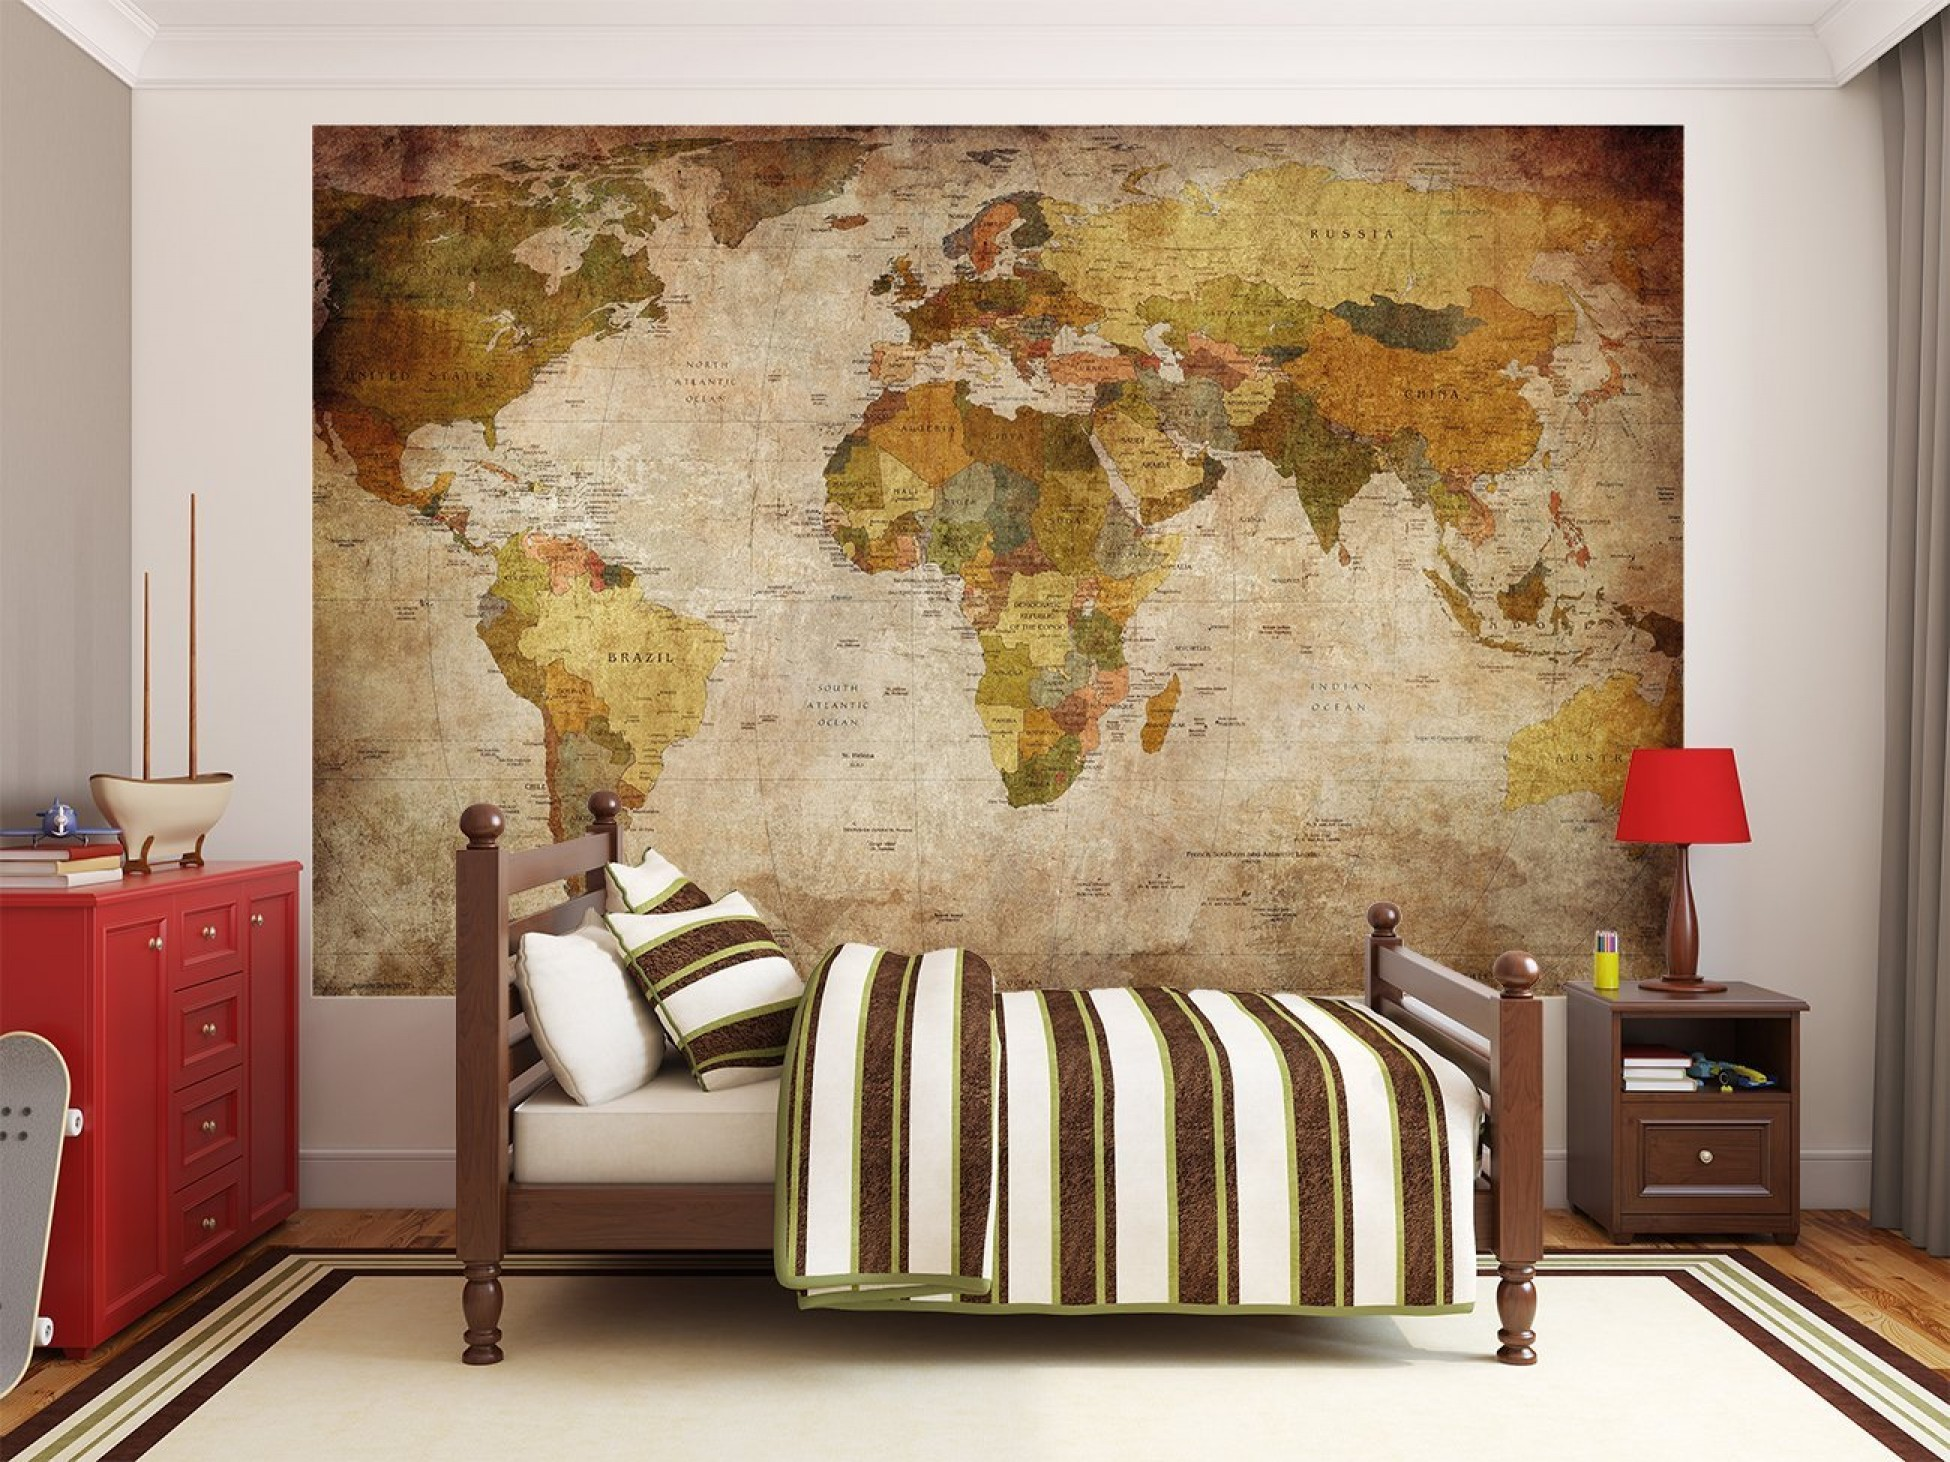 world map photo wallpaper mural vintage retro motif xxl